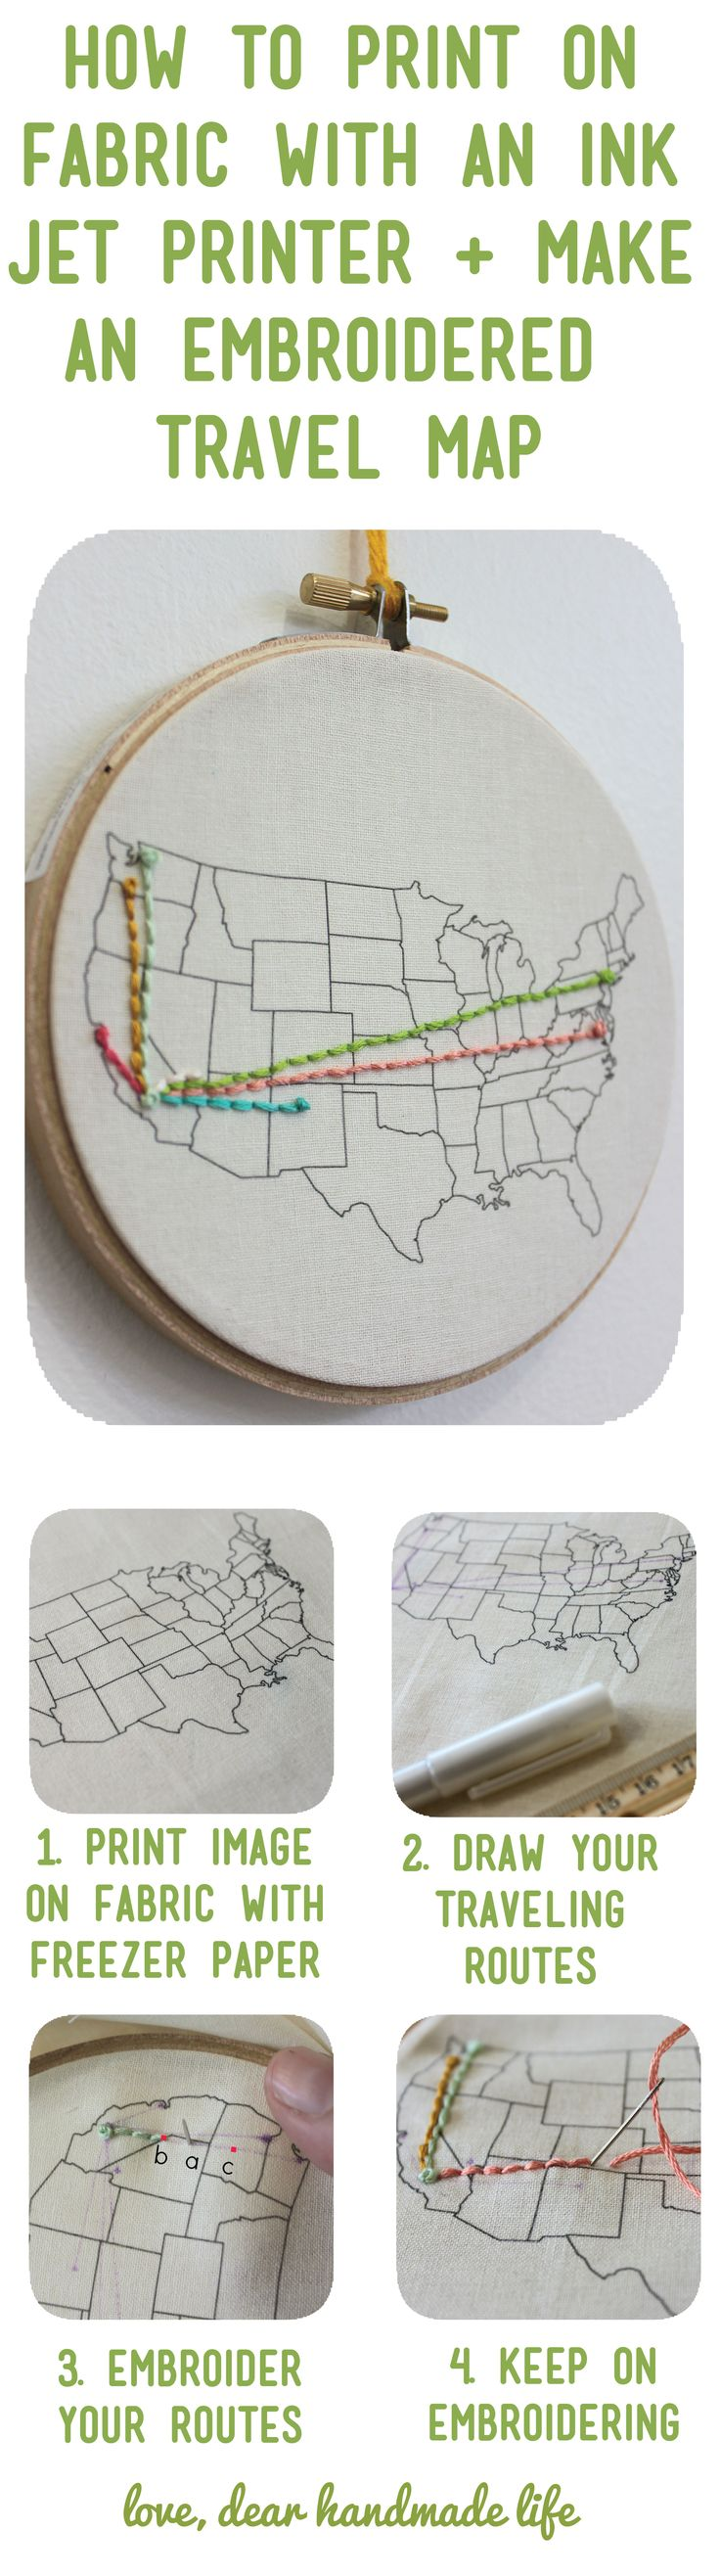 how-to-print-on-fabric-ink-printer-embroider-travel-map-united-states-dear-handmade-life